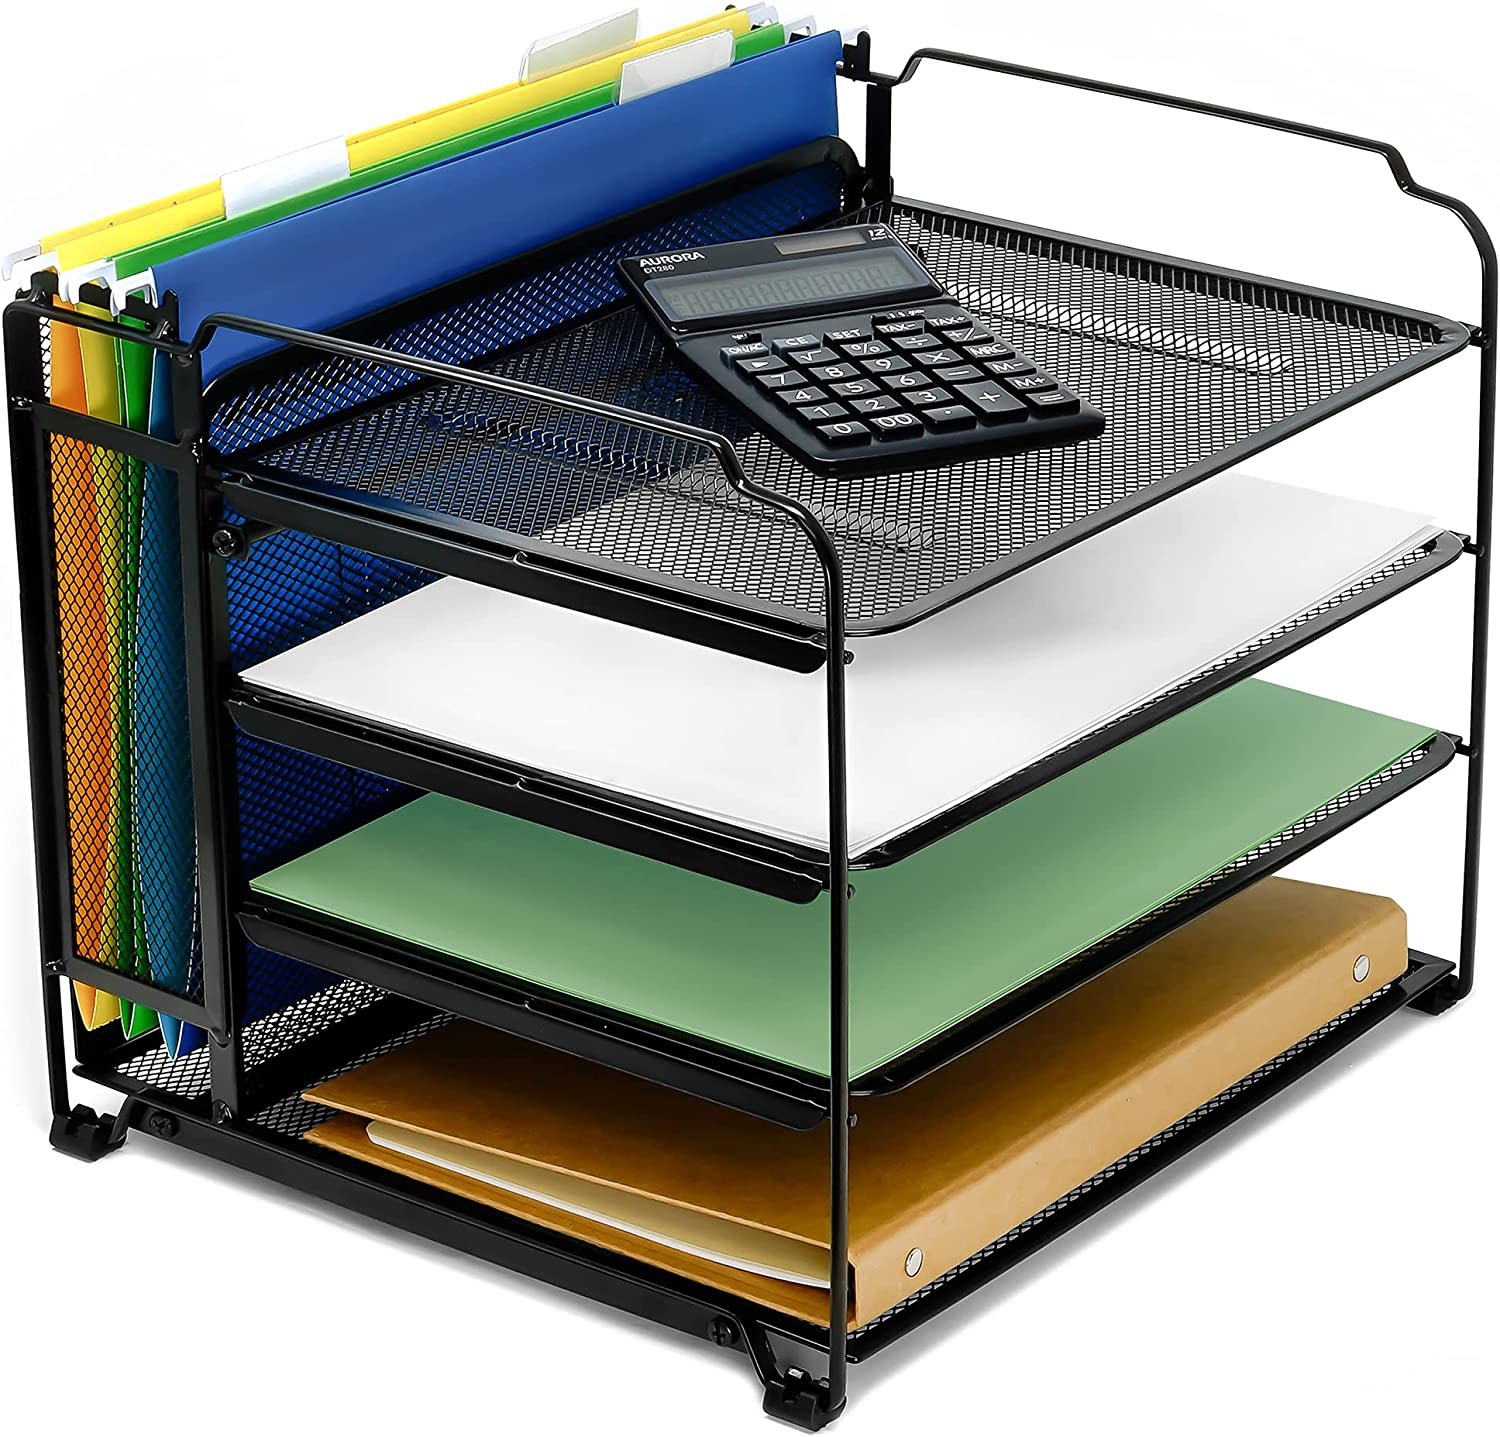 CAXXA 4 Tier Mesh Document Trays with Vertical Upright Section for Hanging File Holders, Mesh Office Supplies Desk Organizer, BLACK: Home Improvement